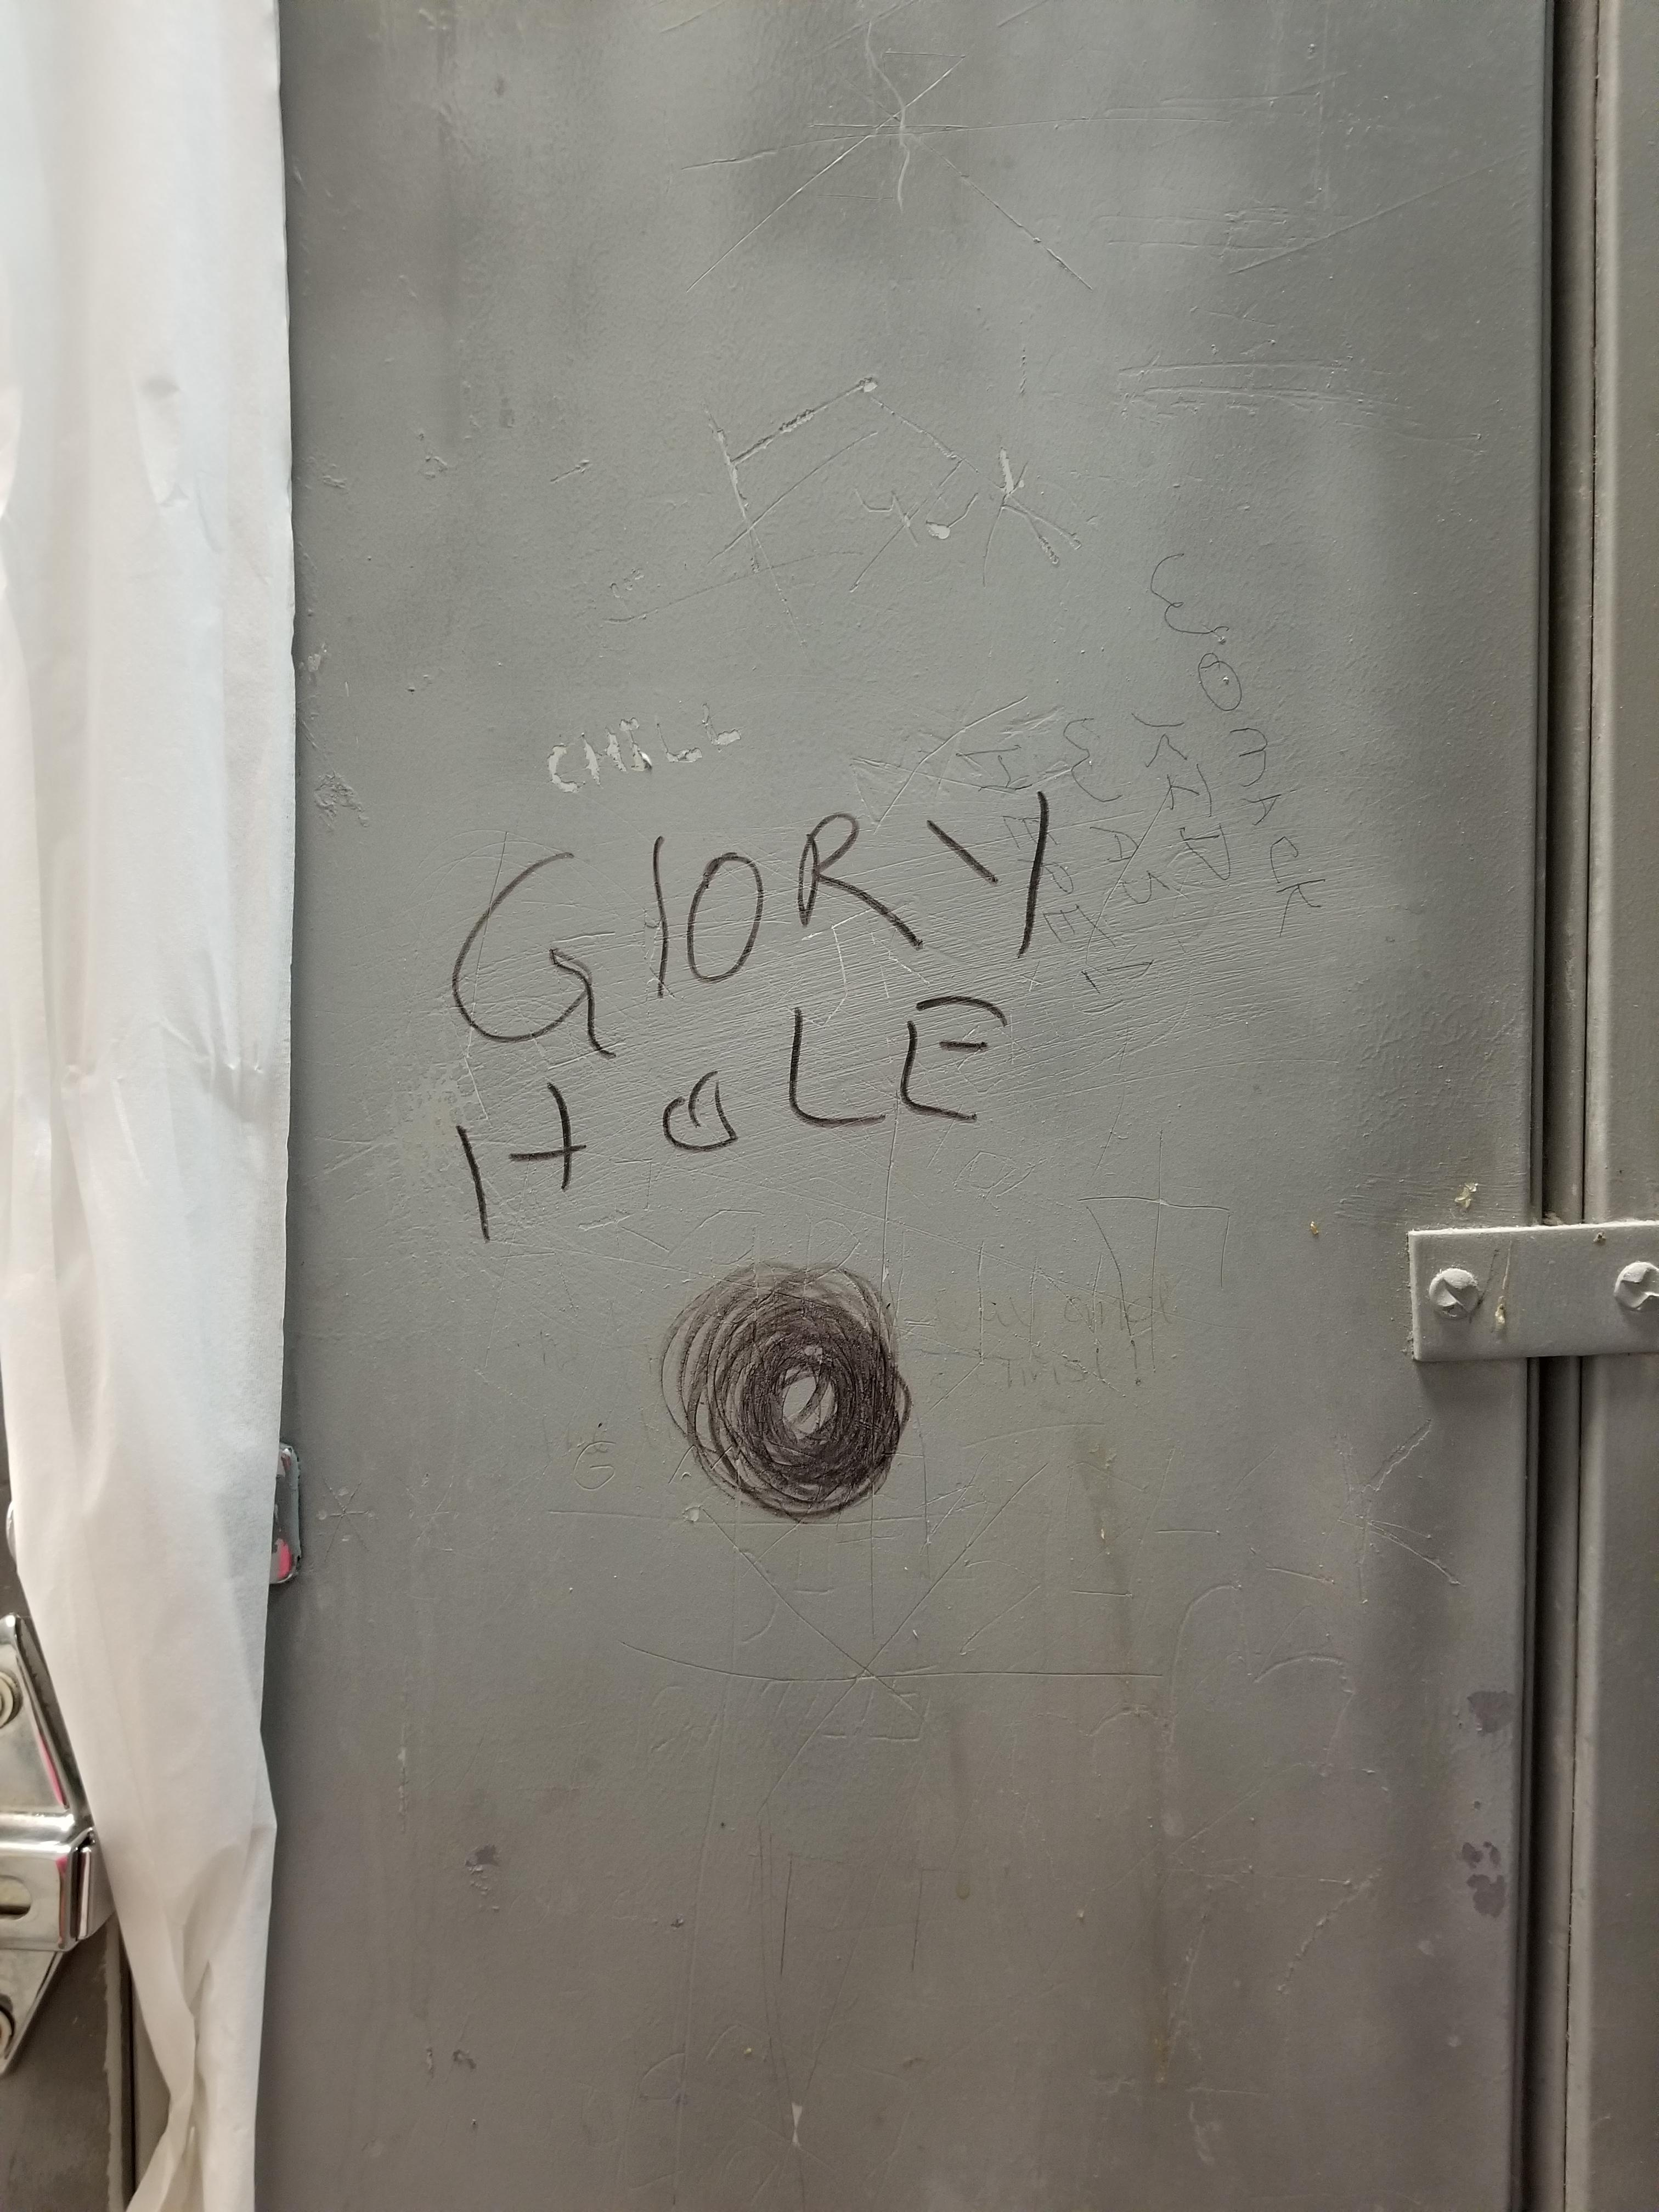 glory a truckers hole